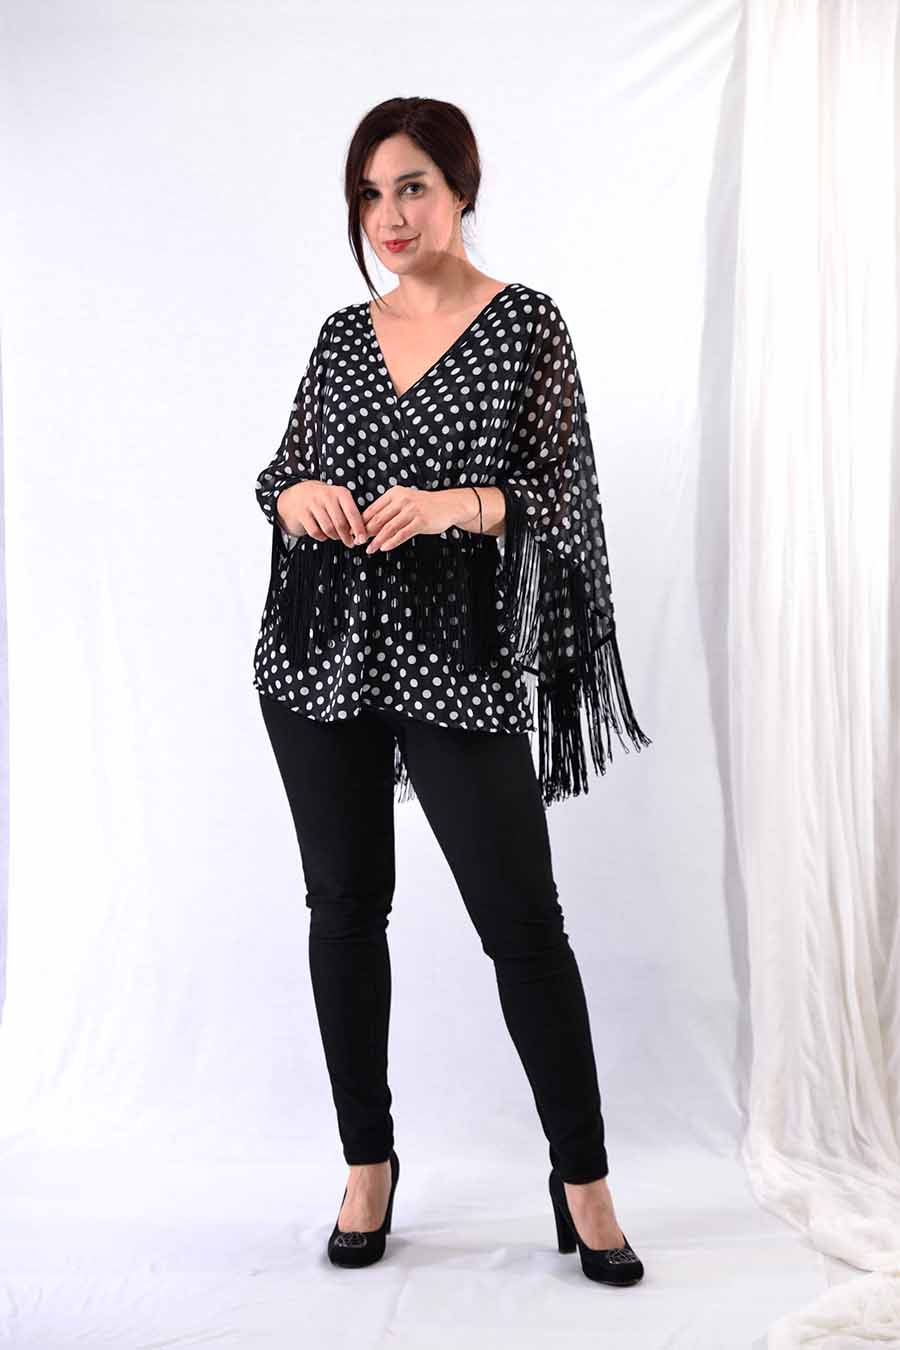 Tunic Blouse with fringes and polka dot print